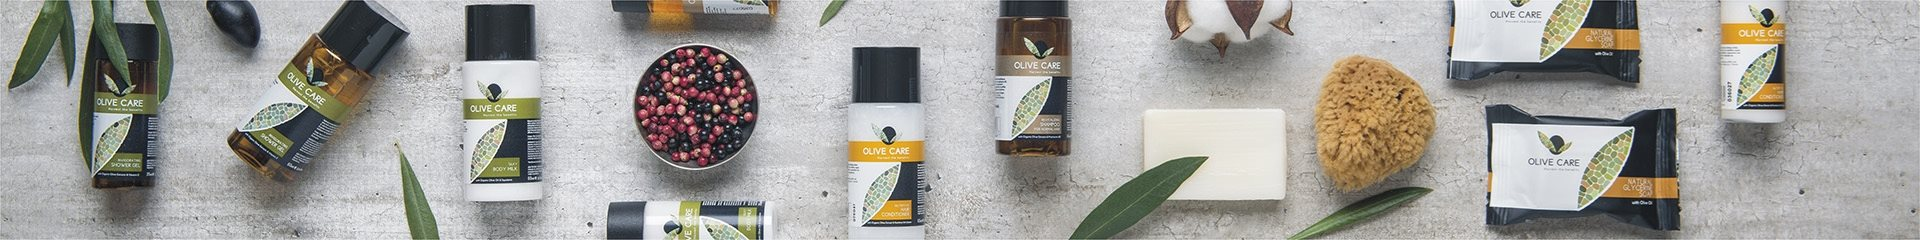 Olive Care